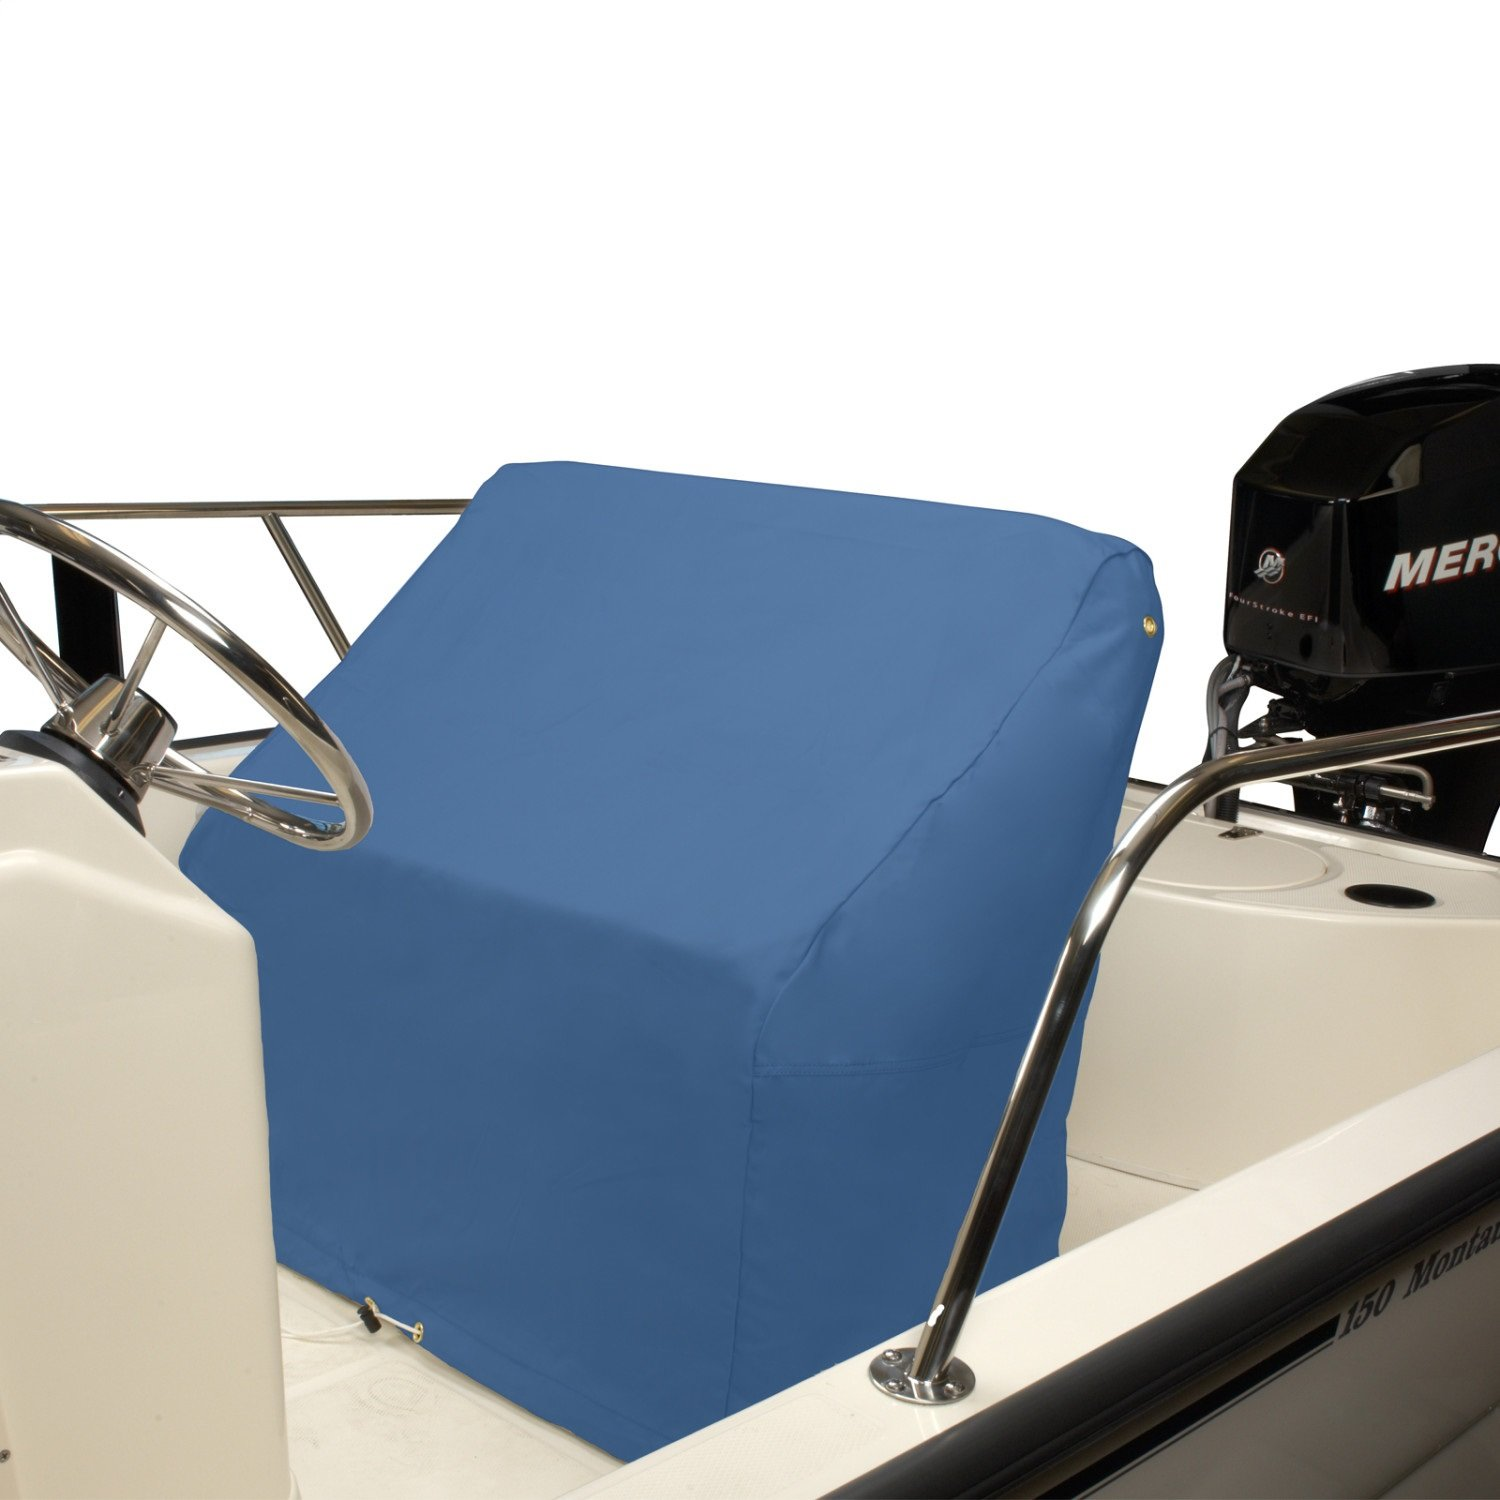 Budge Small Boat Bench Seat Cover Fits a Small Boat Bench Fits 22'' Long x 37'' Wide x 35'' High, BA-11 (Blue)